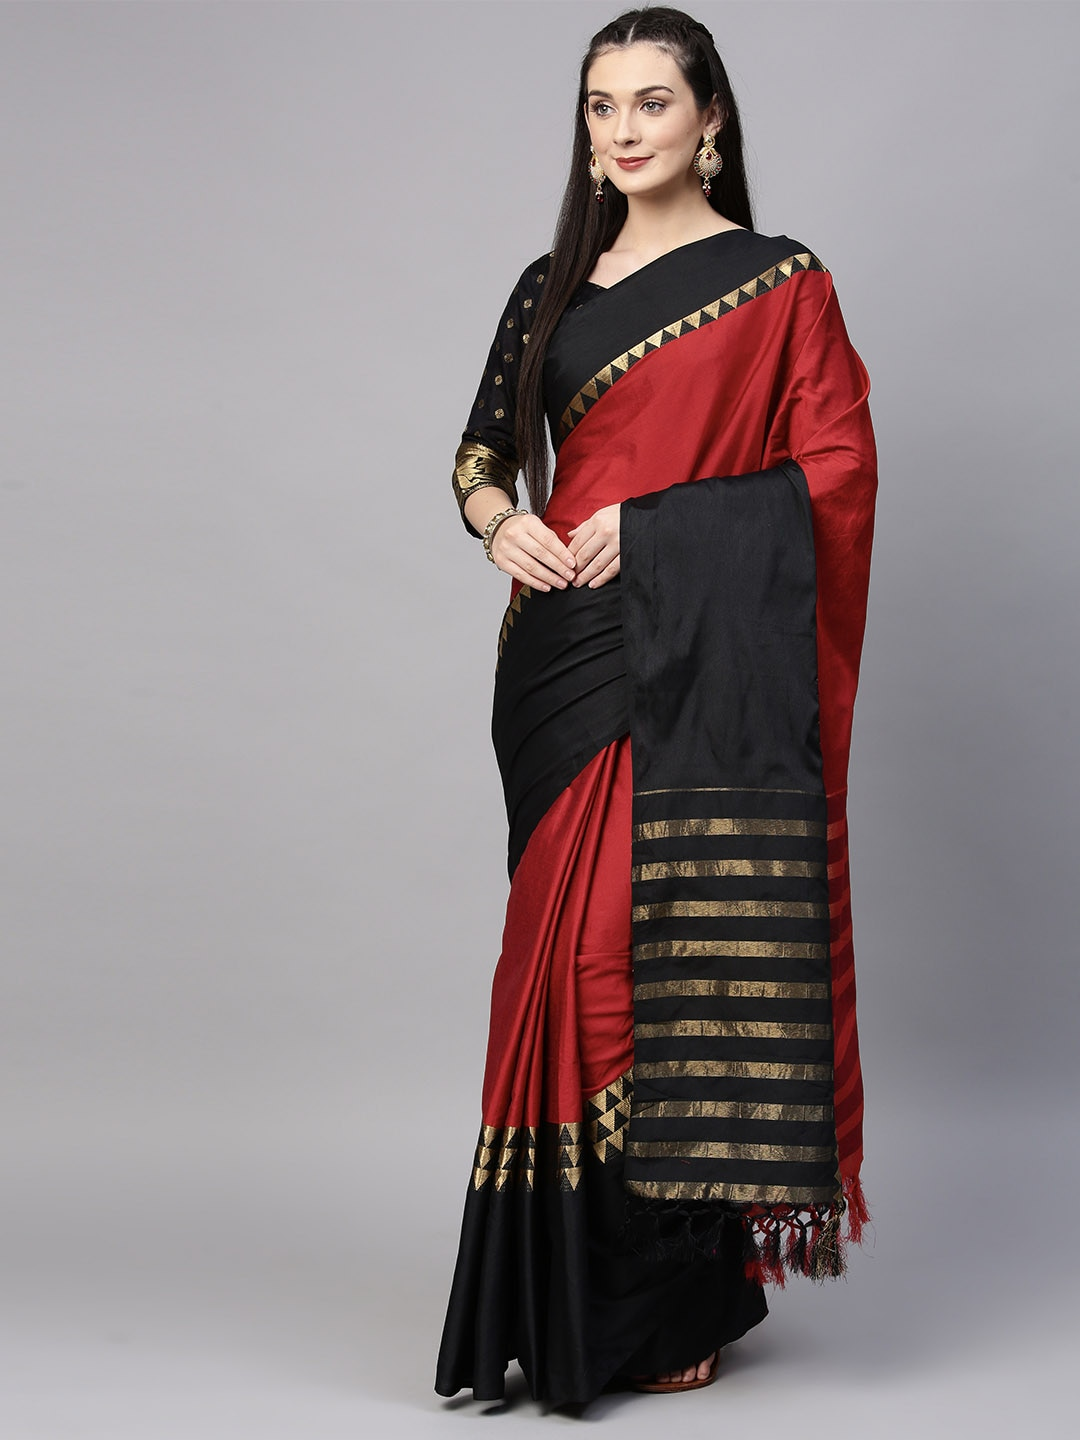 a9c0be0b7b9b4 Black Saree - Black Designer Sarees Online   Best Price